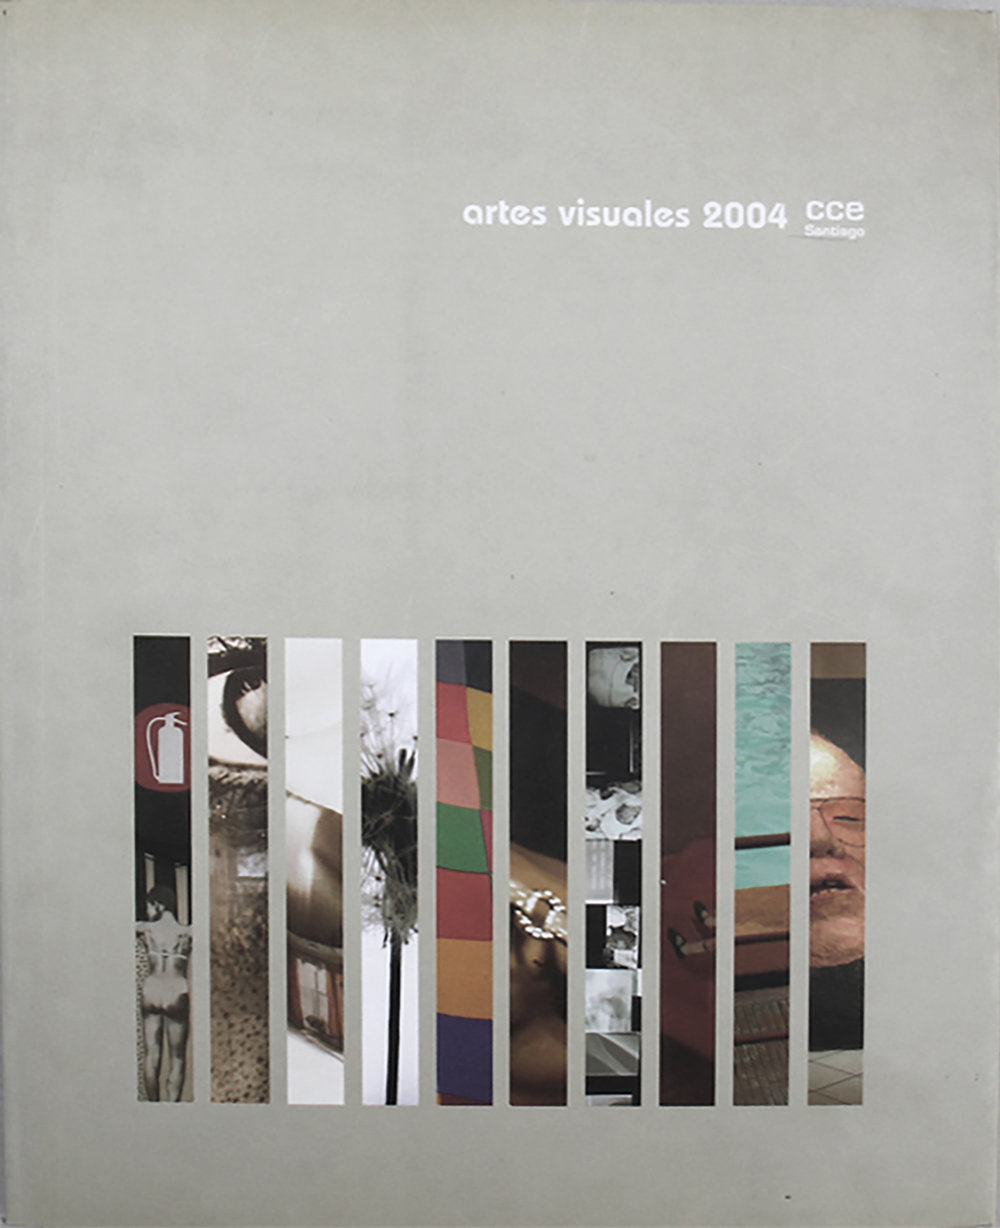 Artes Visuales, CCE Santiago (2004)  Authors: Guillermo Machuca, Carlos Navarrete, Ricardo Loebell and Voluspa Jarpa.  Editors: Natasha Pons and David Rodriguez  104 pages  Spanish  Softcover, 28 x 22 cm.  ISBN: 956-8519-01-7  Published by Centro Cultural de España en Santiago de Chile, CL